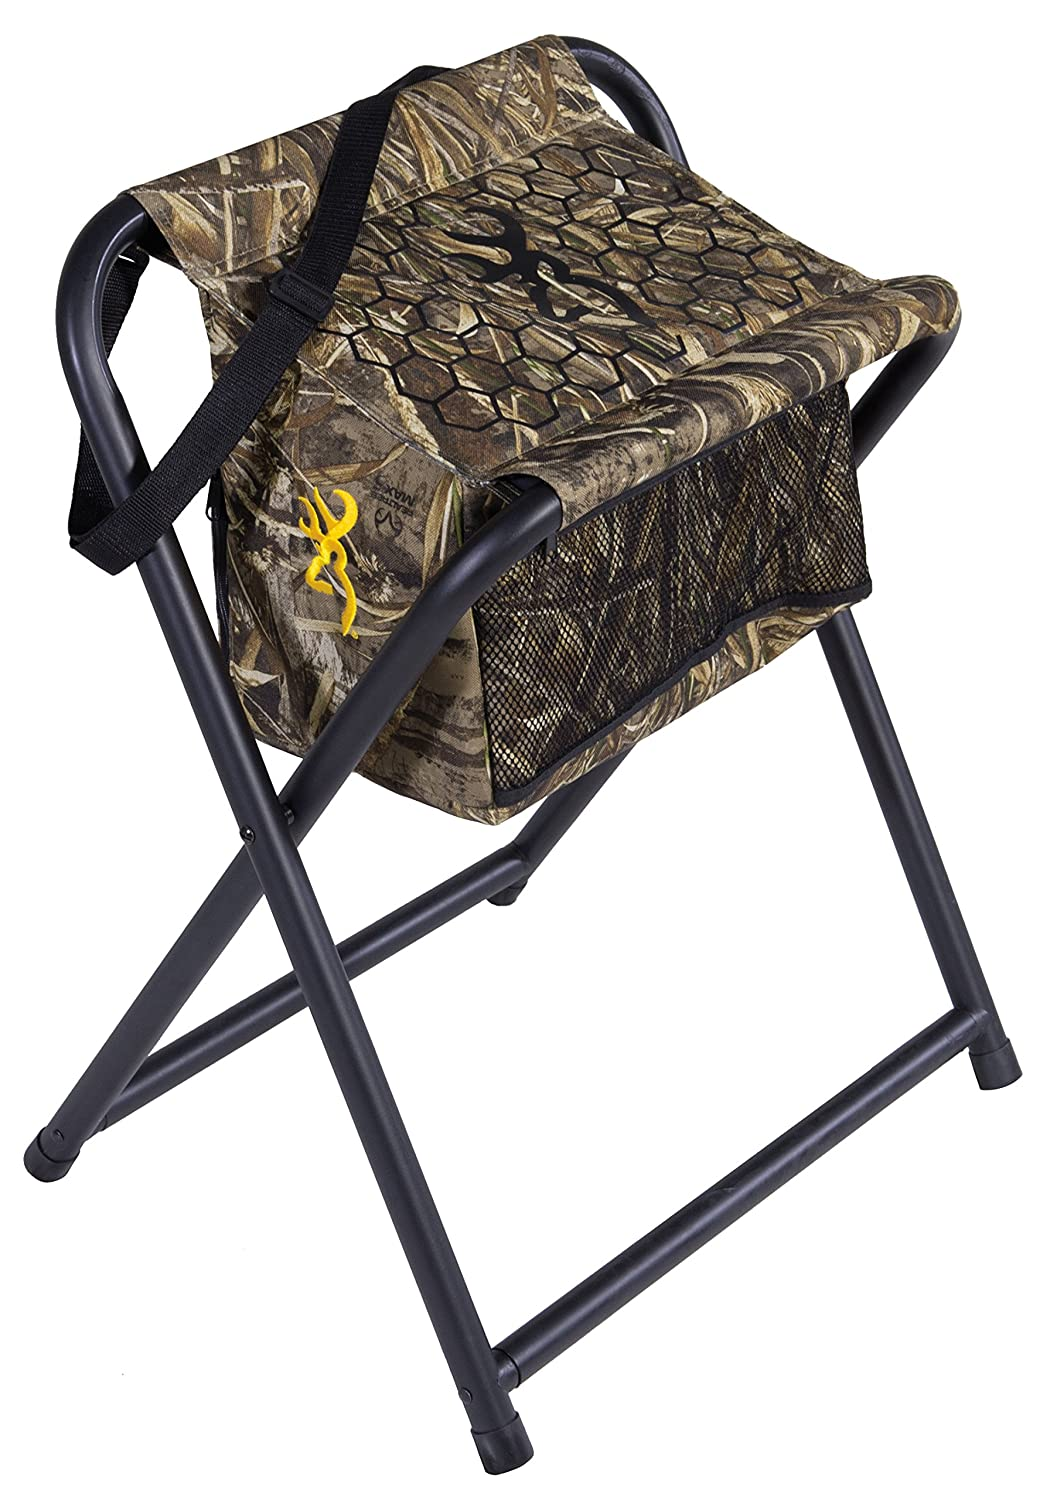 Amazon.com  Browning C&ing Steady Ready Hunting Stool  Cooler Chair  Sports u0026 Outdoors  sc 1 st  Amazon.com & Amazon.com : Browning Camping Steady Ready Hunting Stool : Cooler ... islam-shia.org